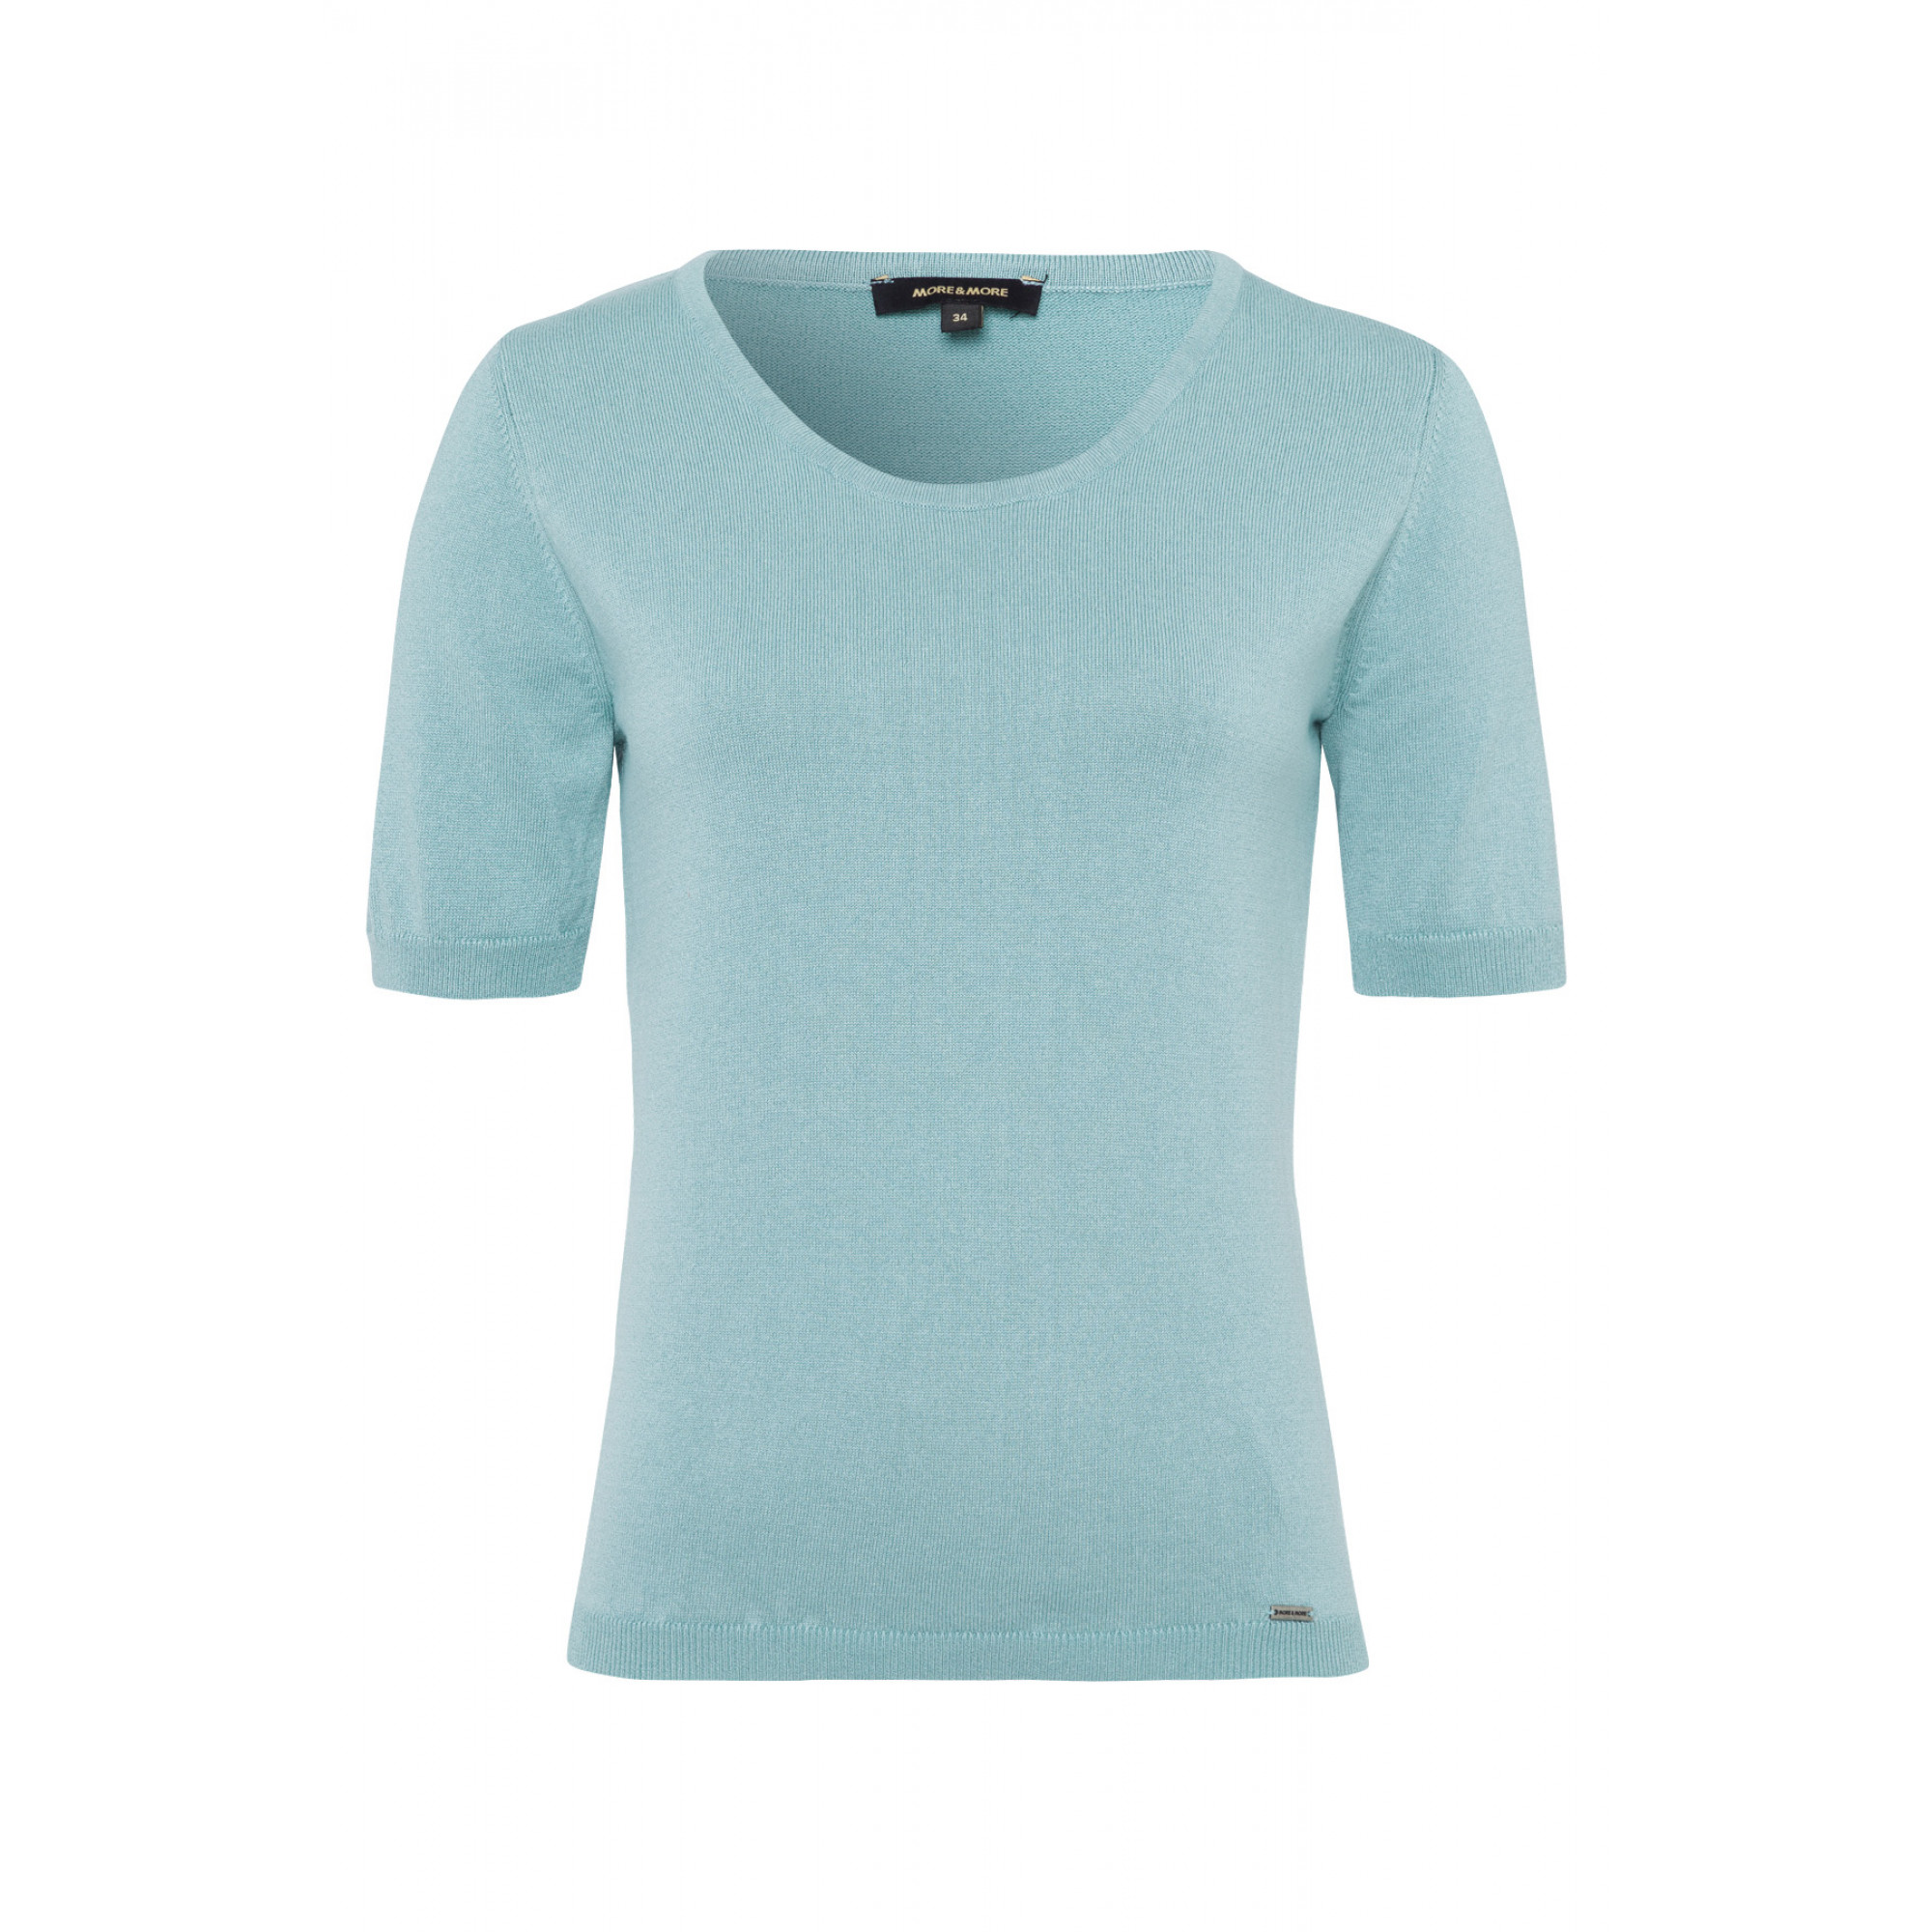 Feinstrick-Pullover, powder mint 91951534-0613 1